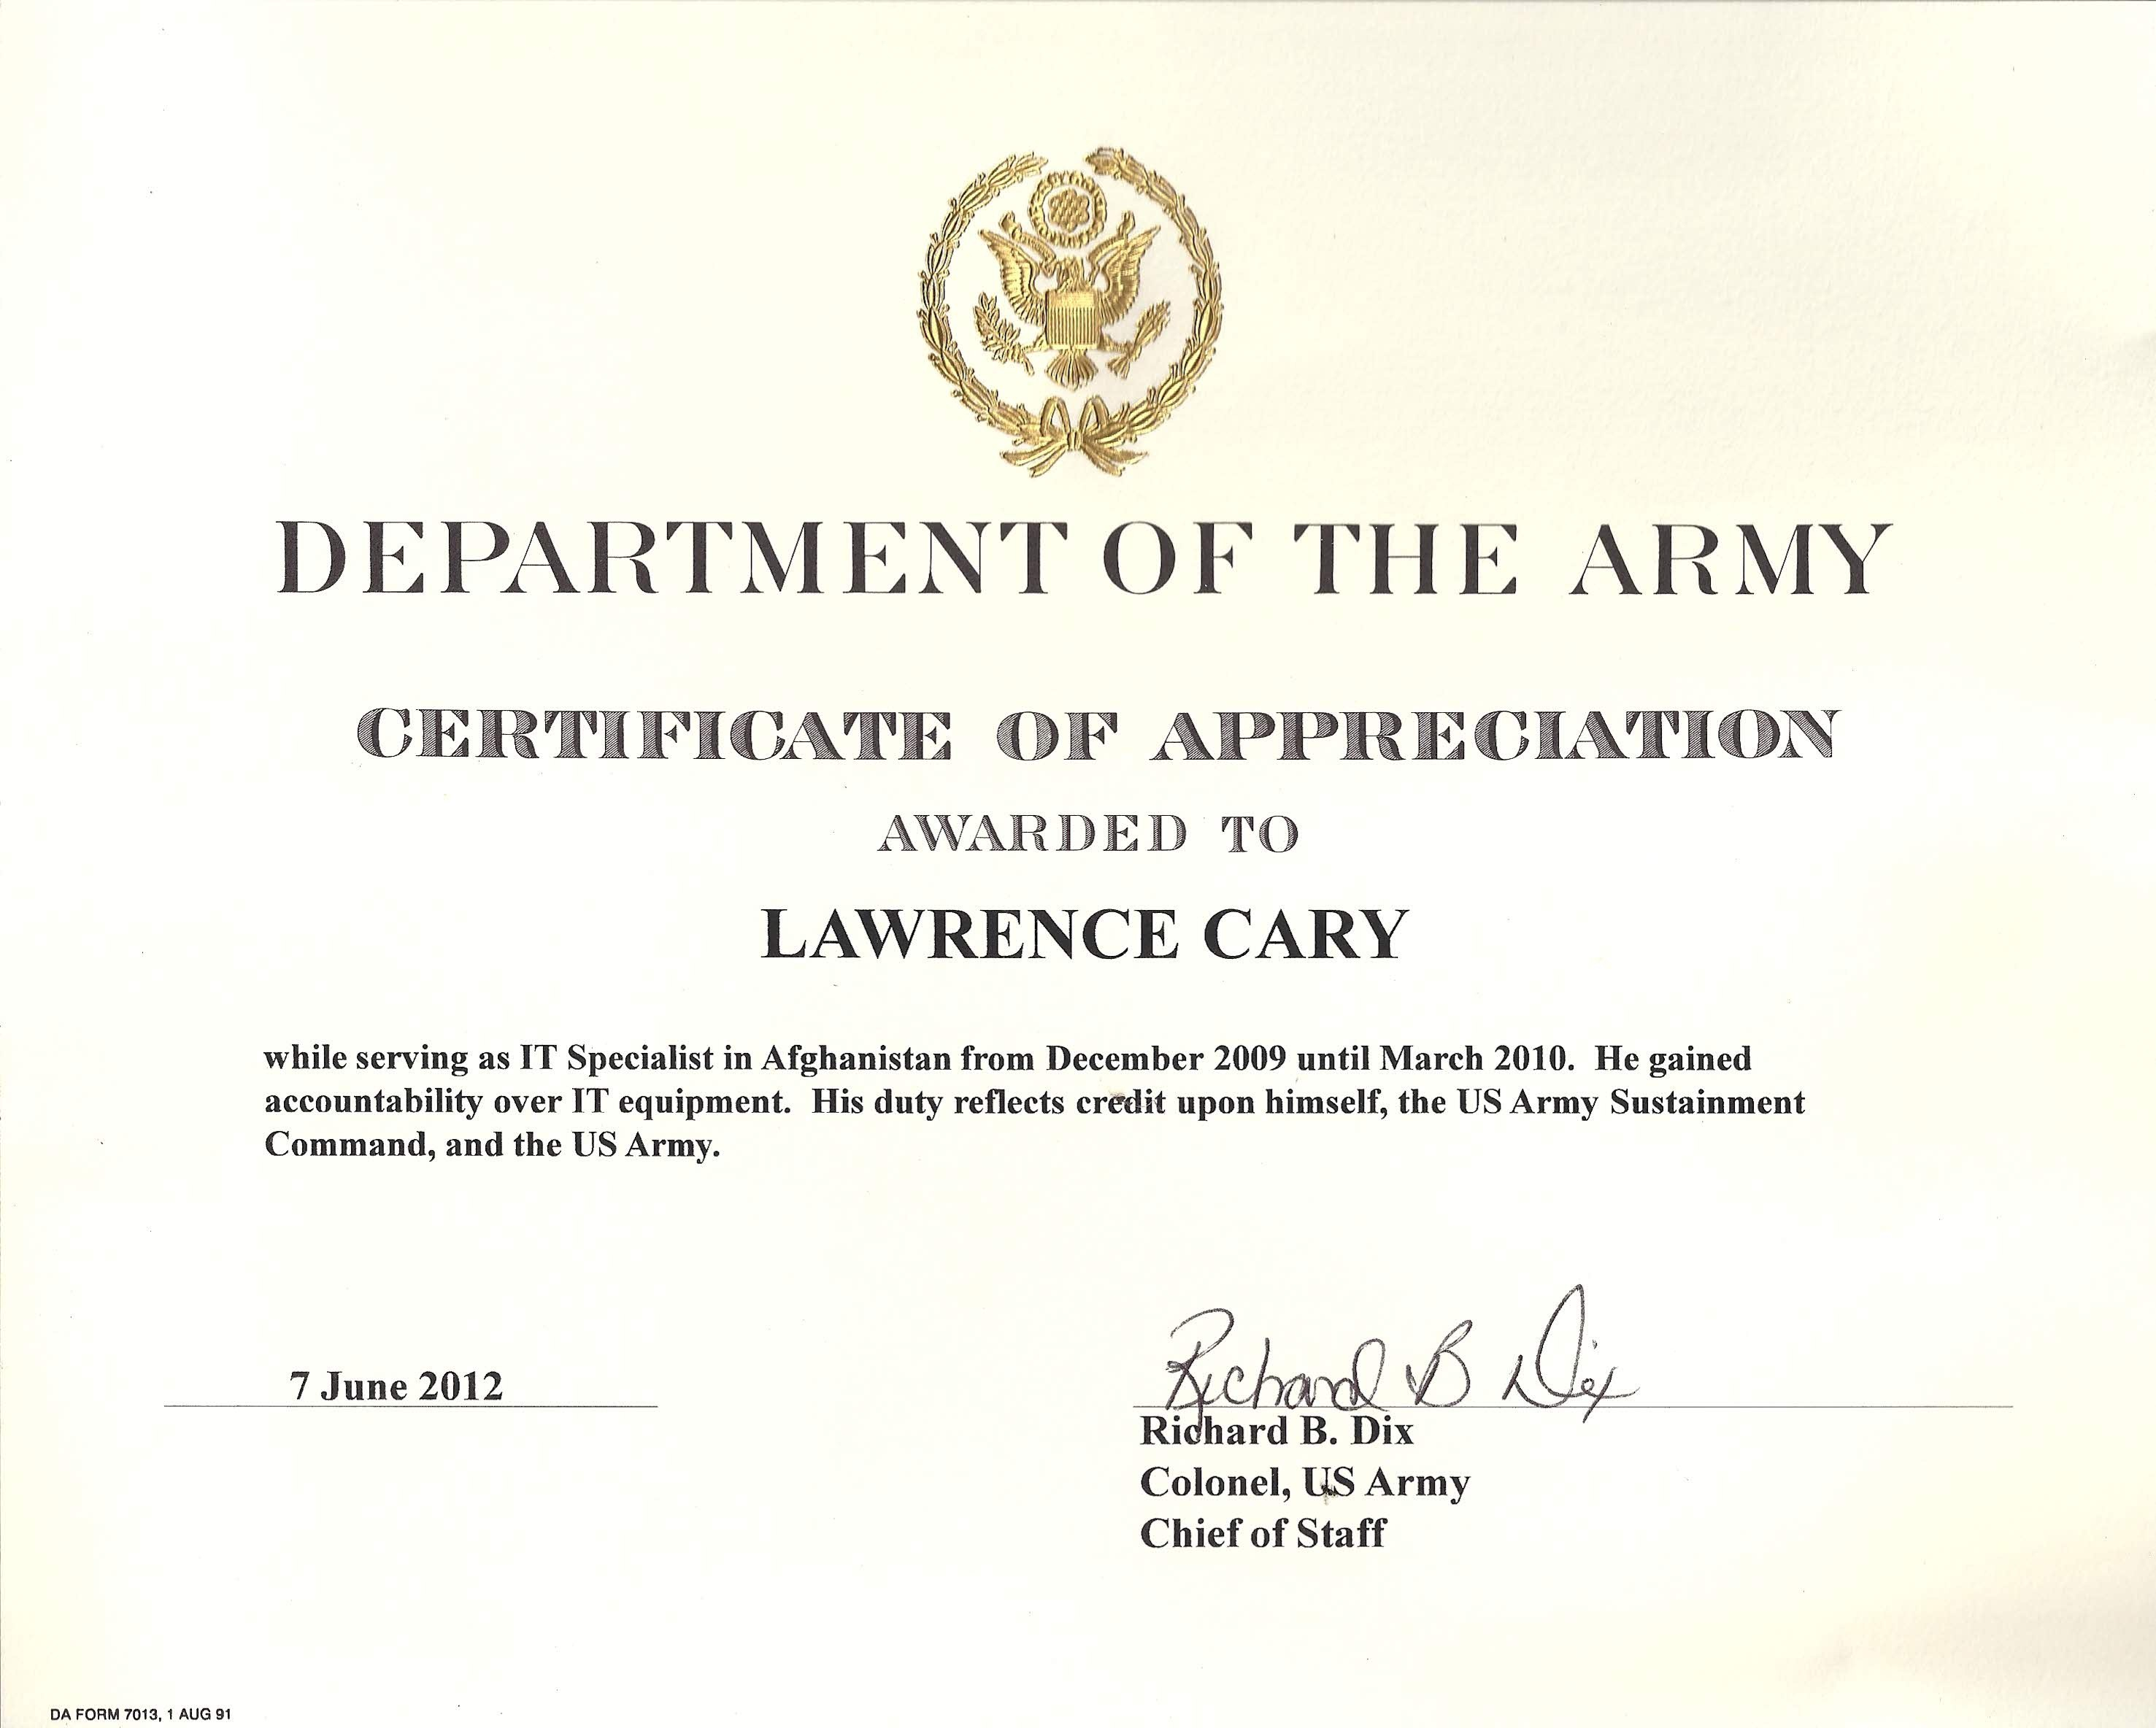 Army Appreciation Certificate Templates  Pdf Docx  Free With Certificate Of Achievement Army Template